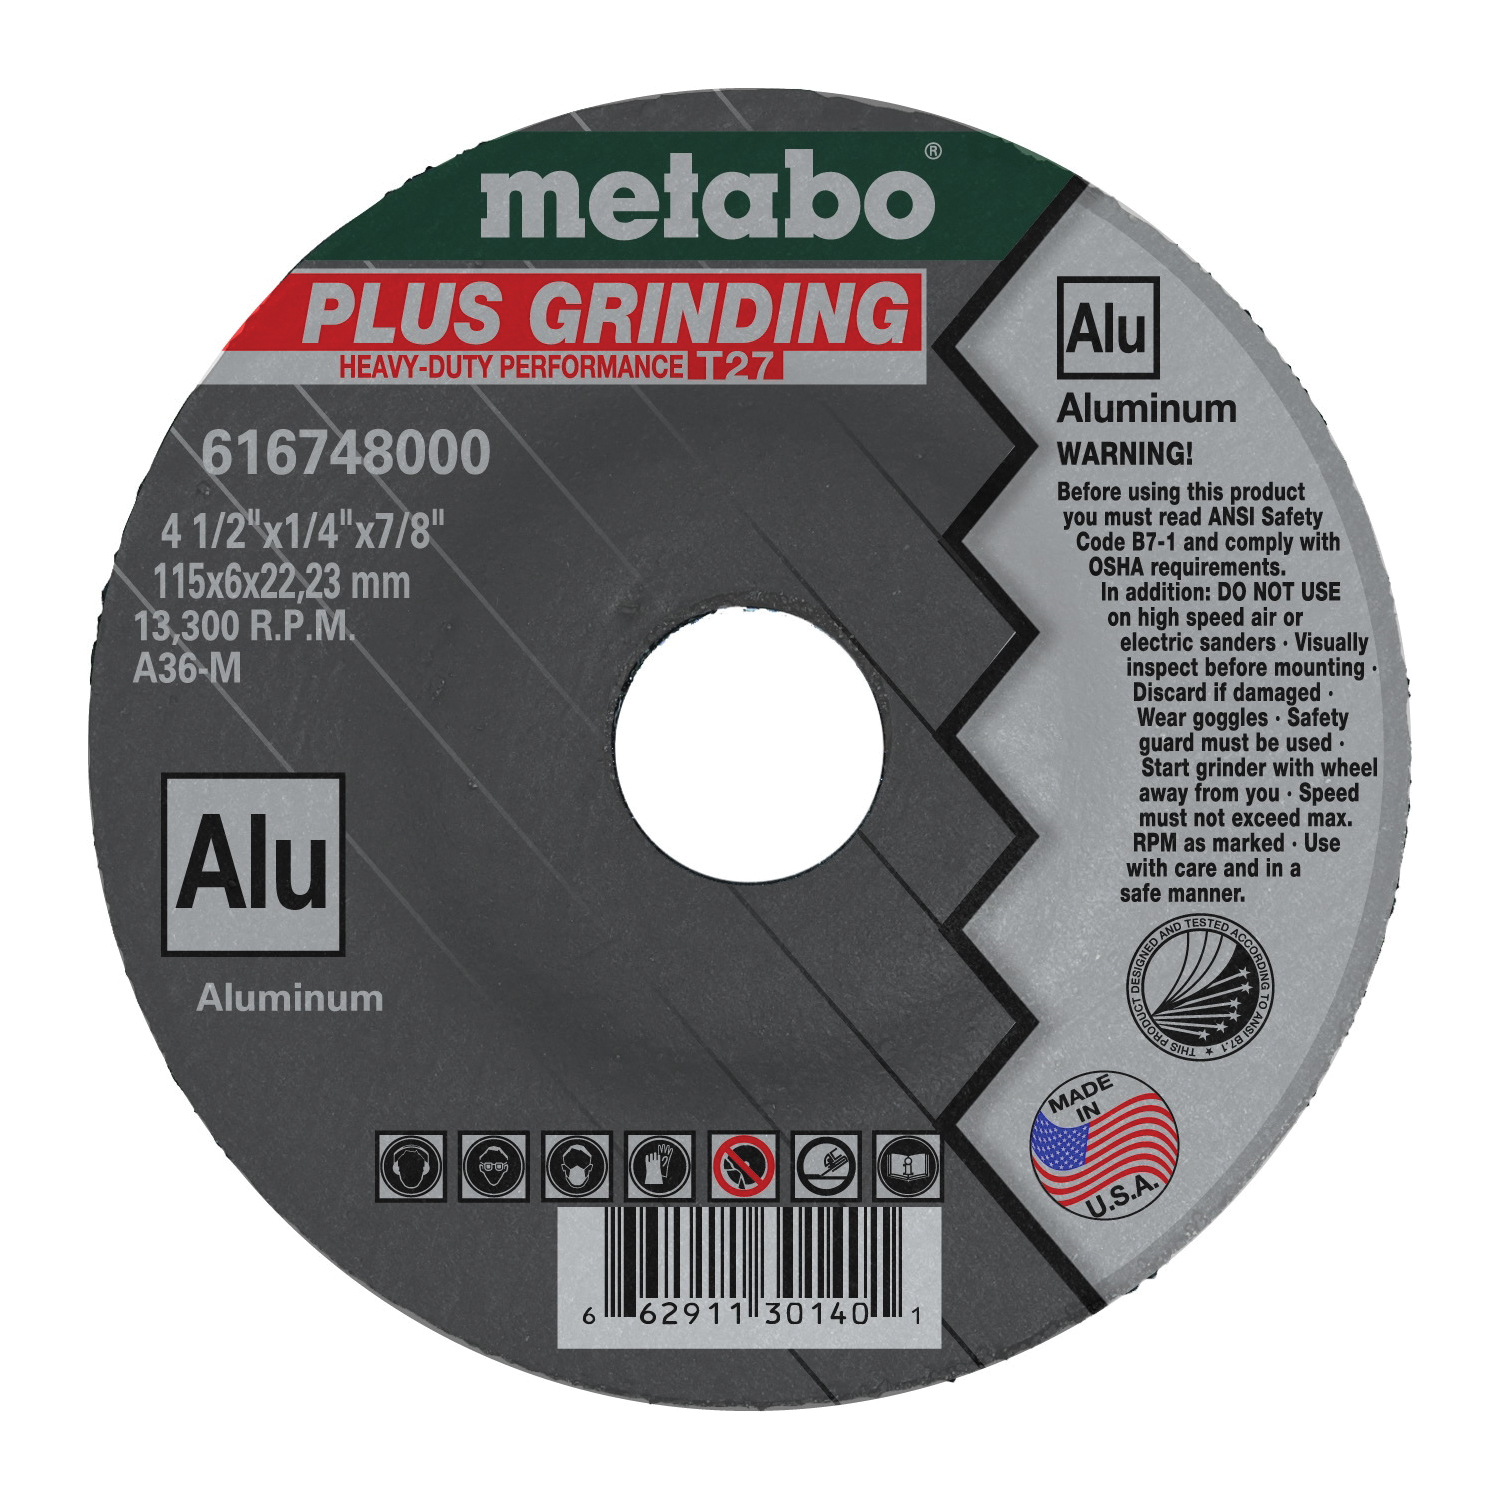 metabo® 616748000 Plus Grinding Depressed Center Wheel, 4-1/2 in Dia x 1/4 in THK, 7/8 in Center Hole, A36M Grit, Aluminum Oxide Abrasive